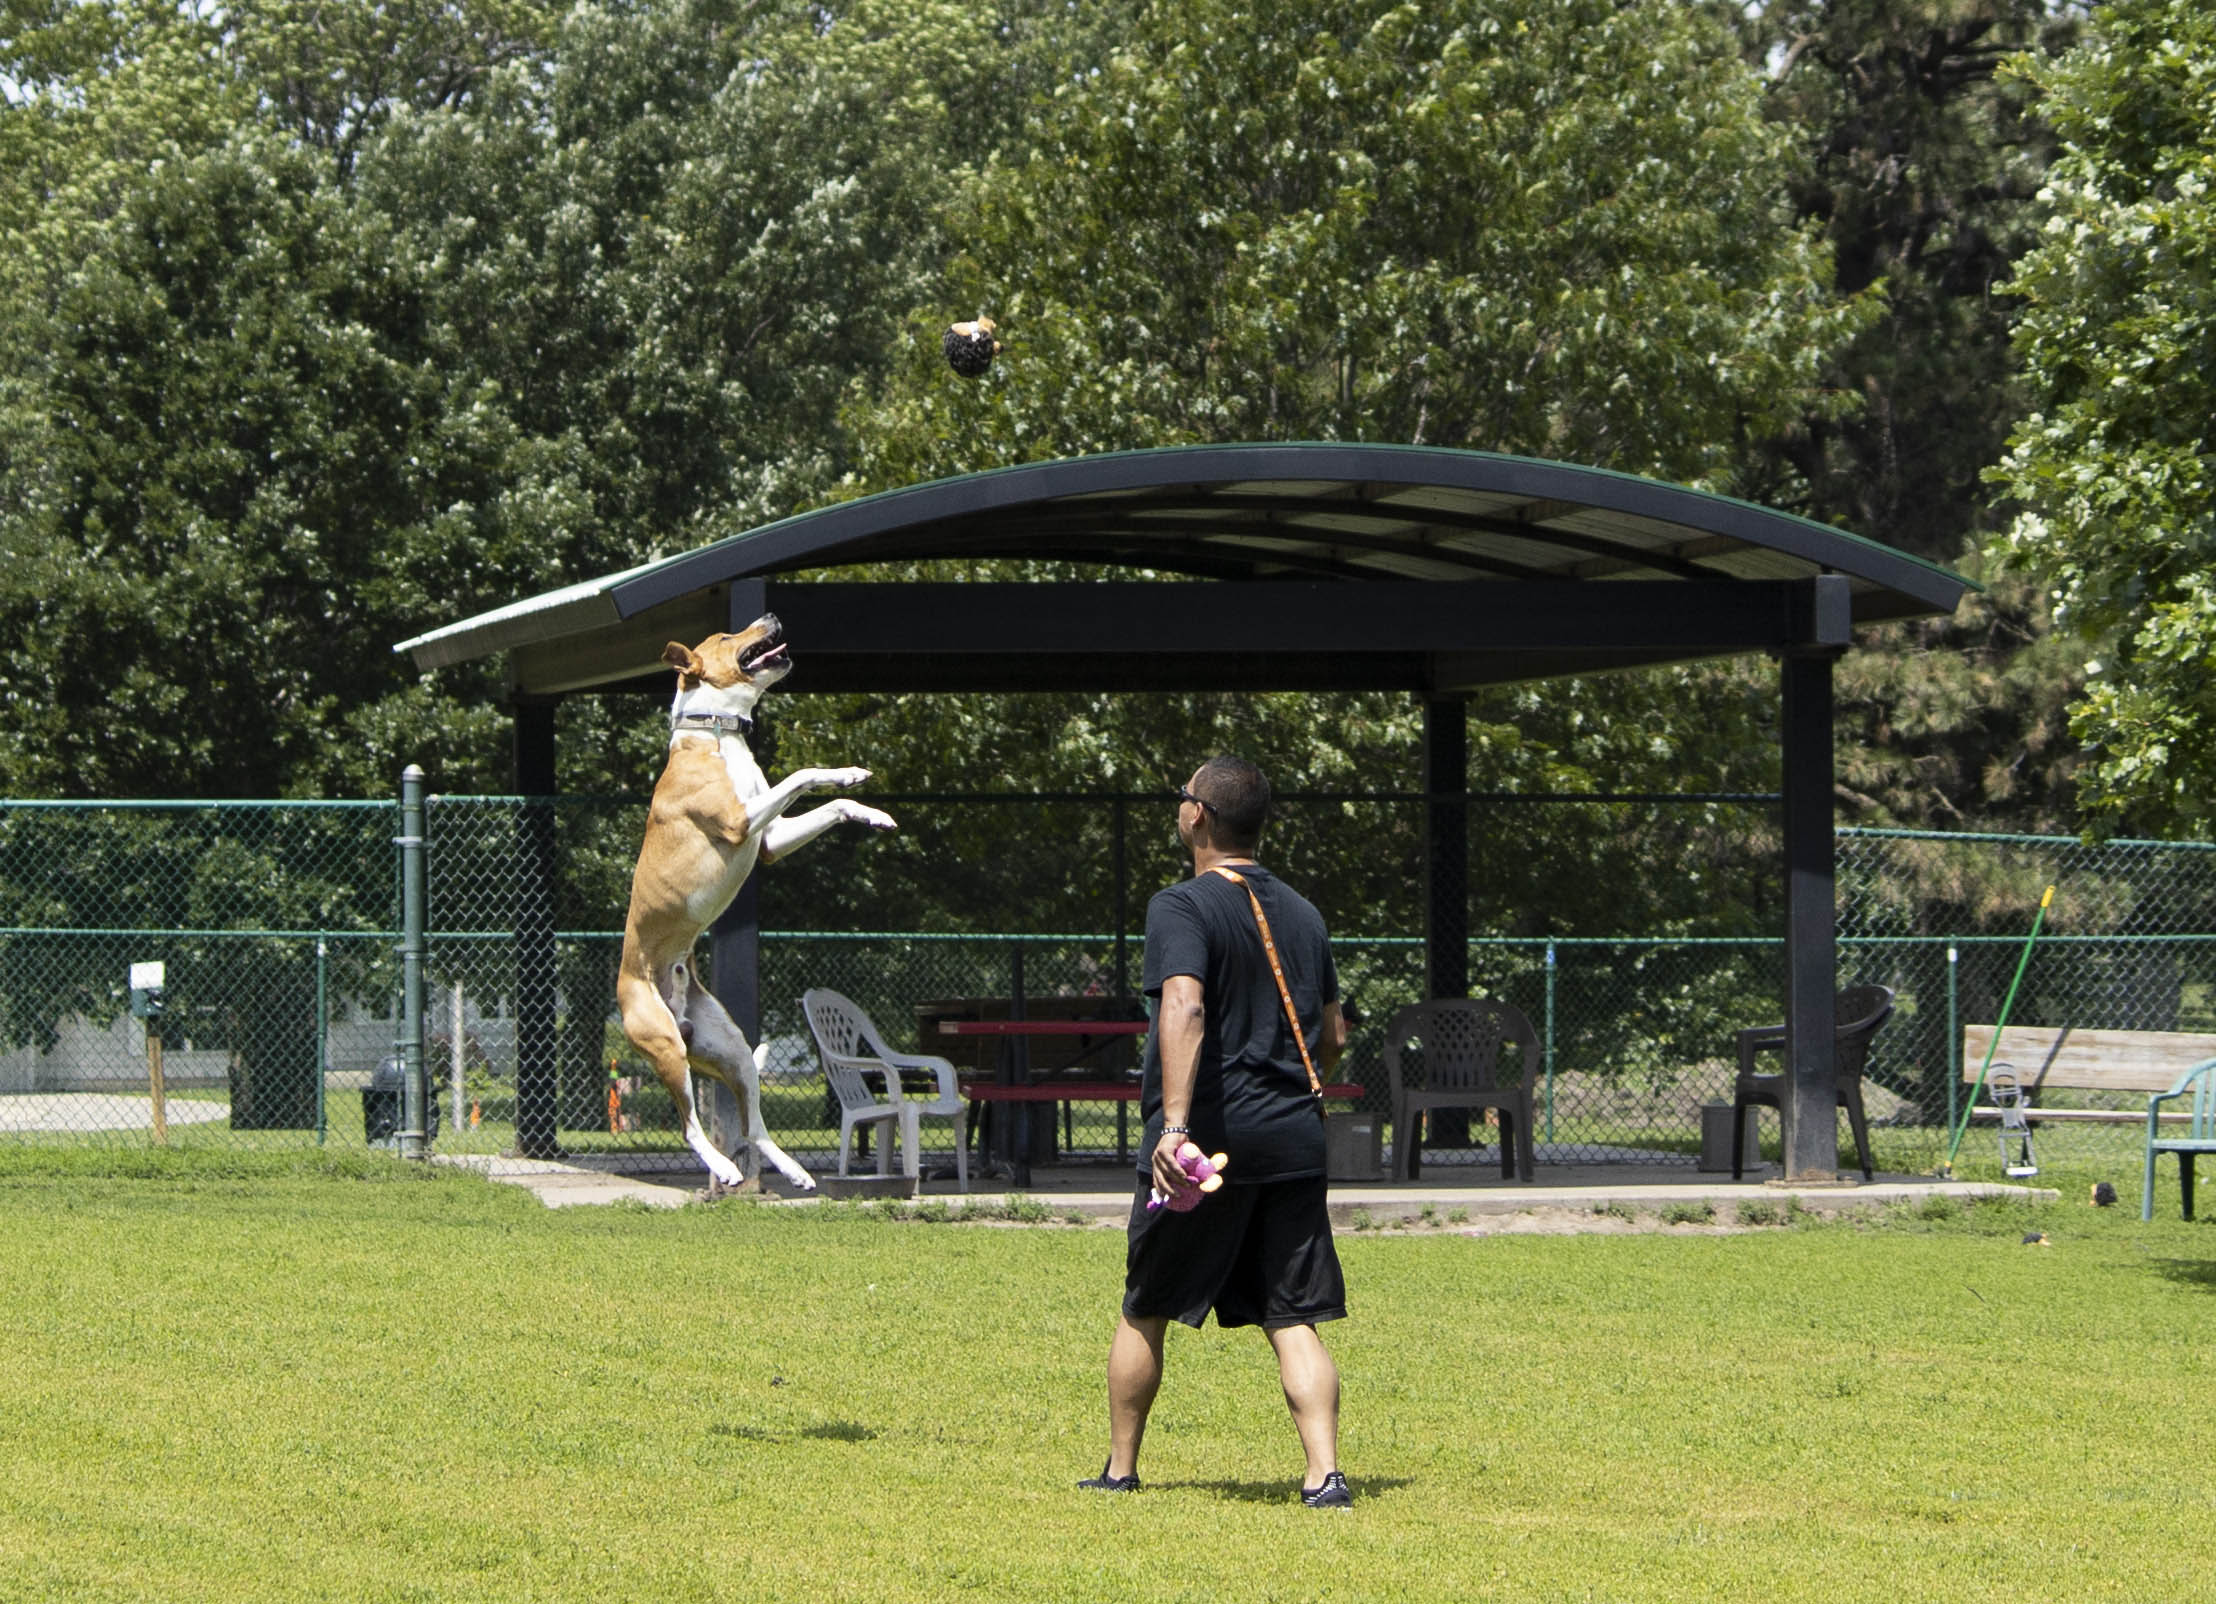 Man with dog leaping in air